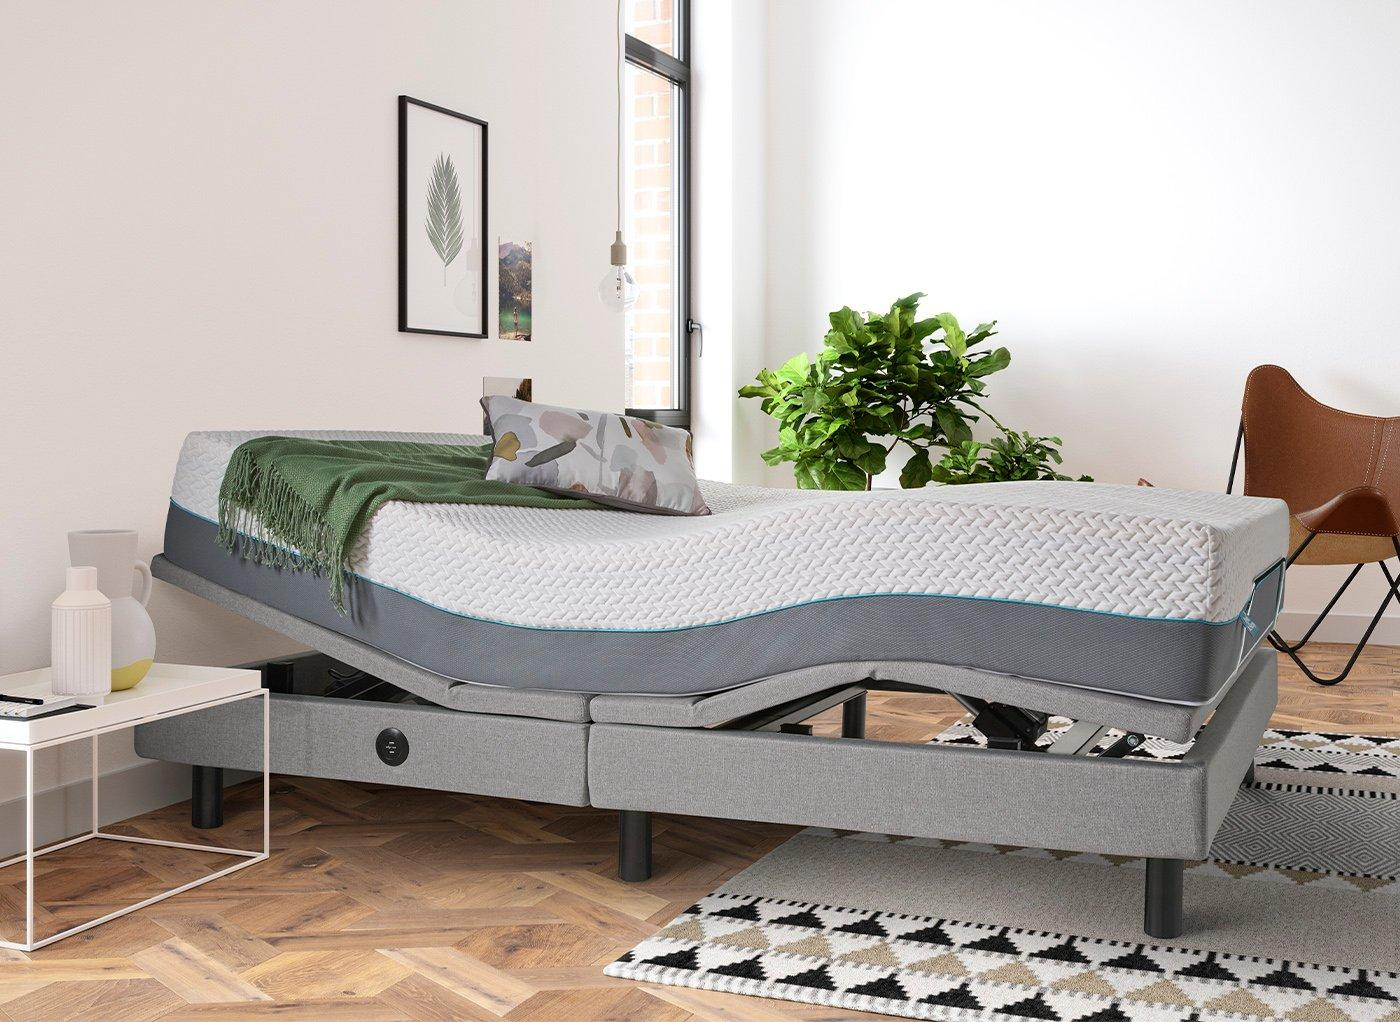 Sleepmotion 800i D Adjustable Bed Frame Adjustable Beds Beds Dreams